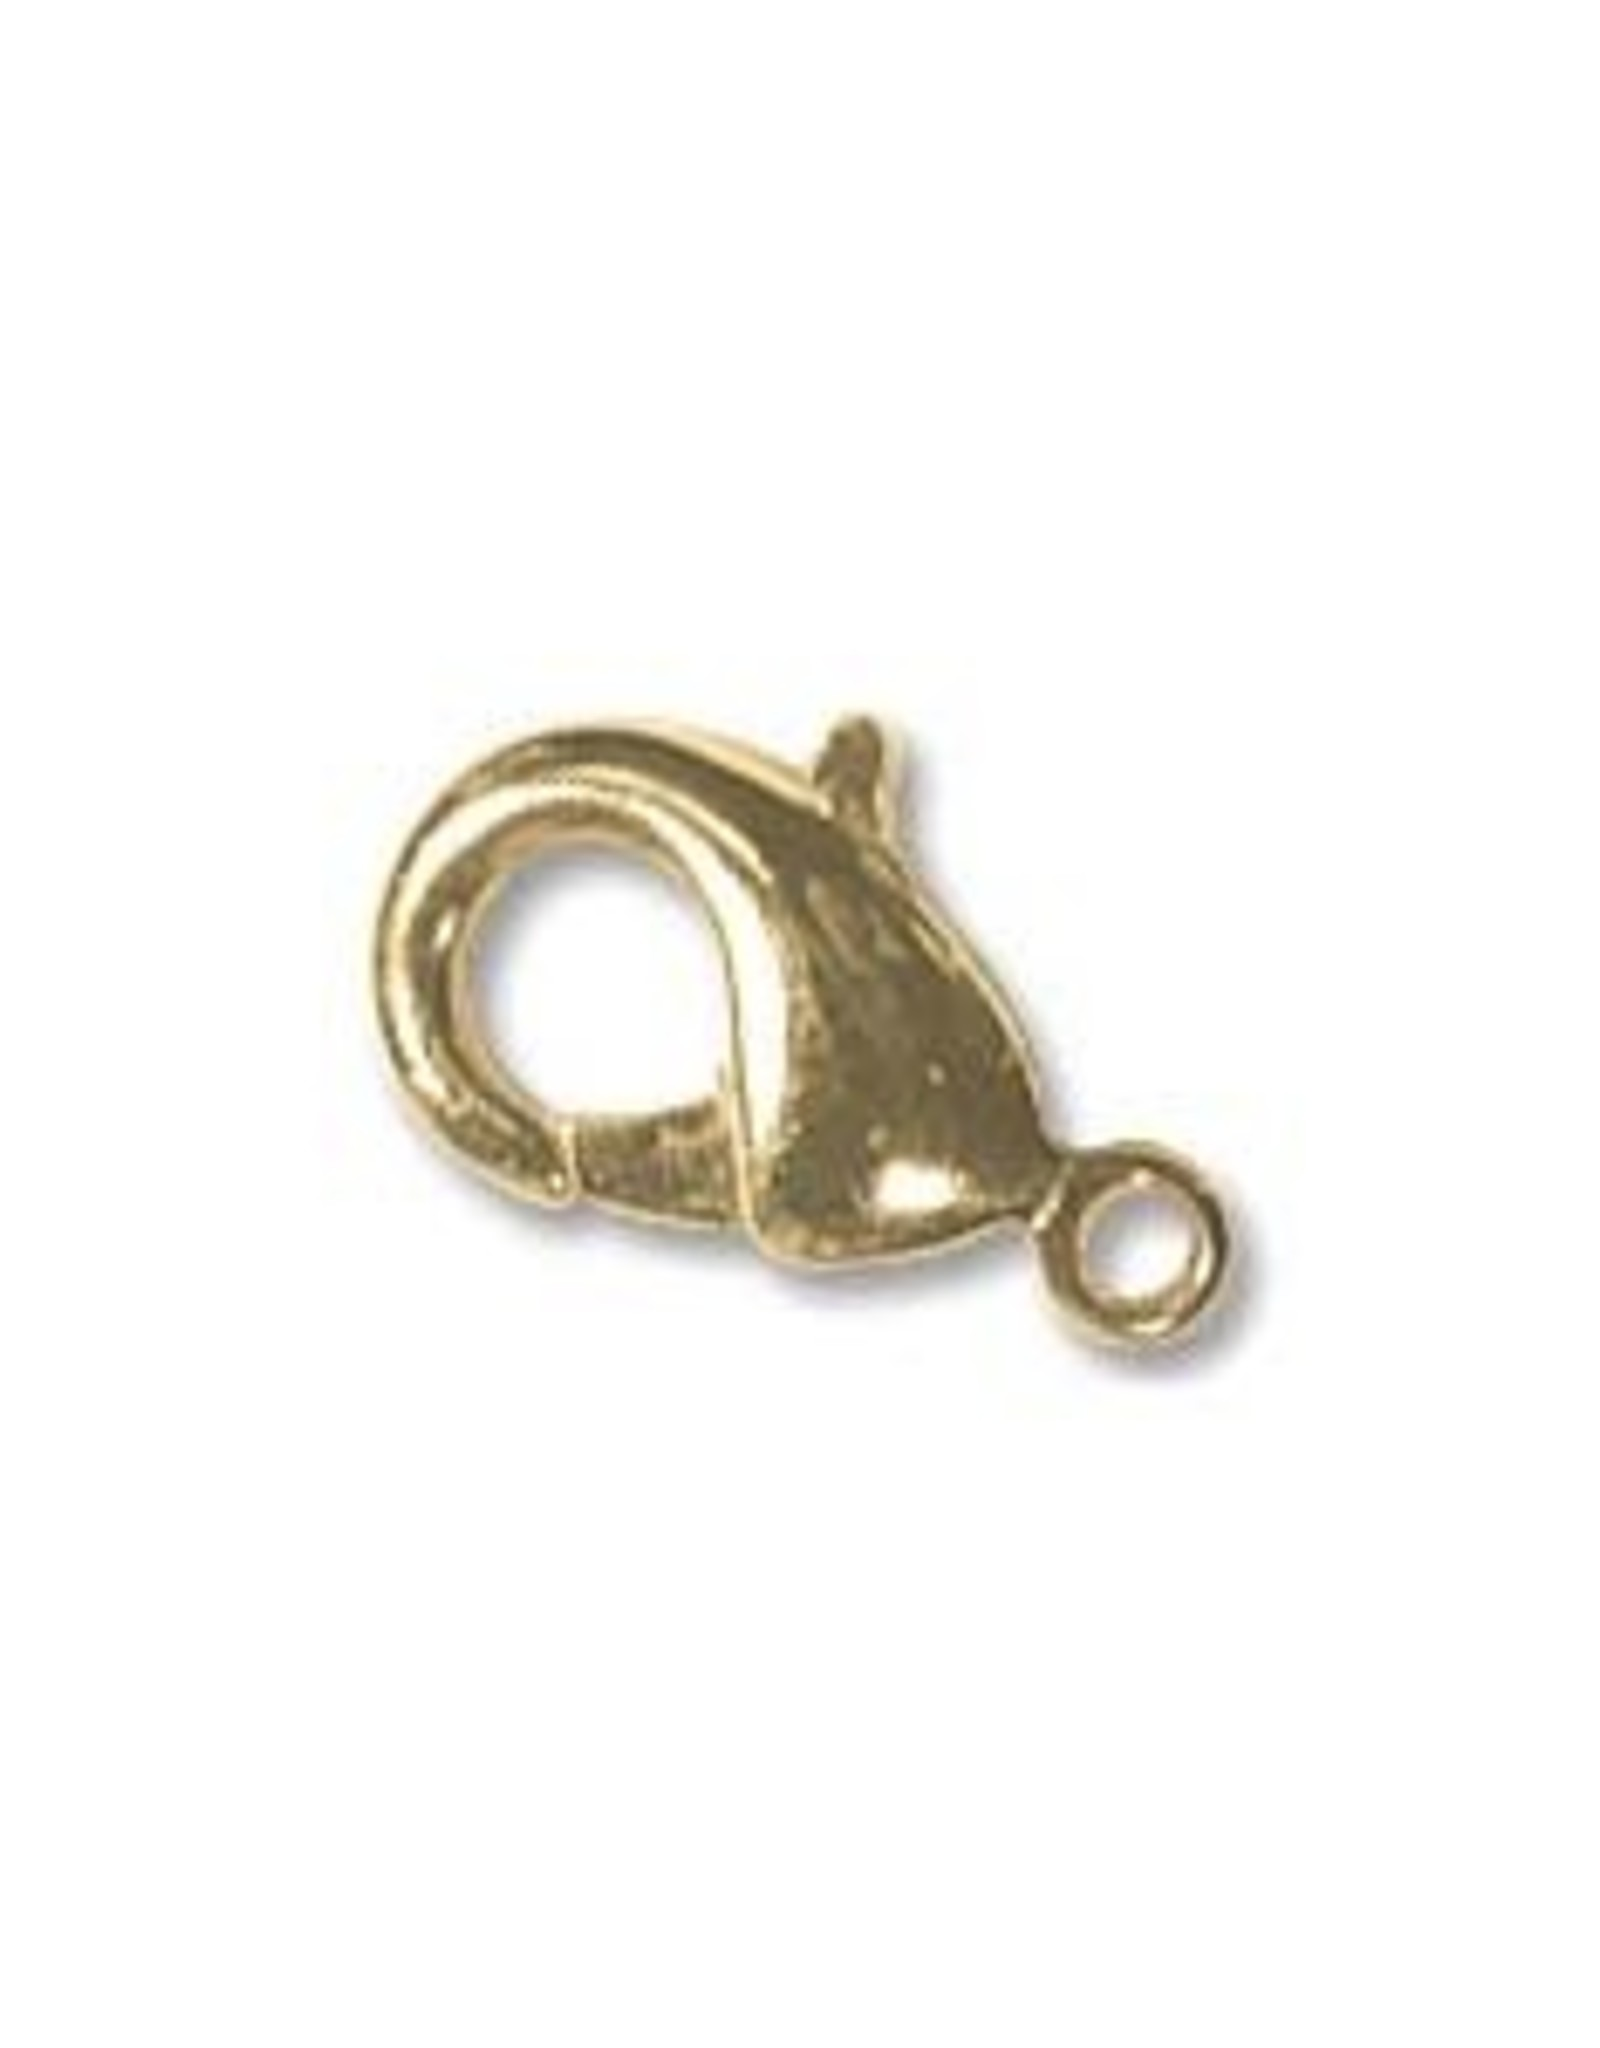 12x6.5mm Lobster Clasp Gold Plate, Qty 12